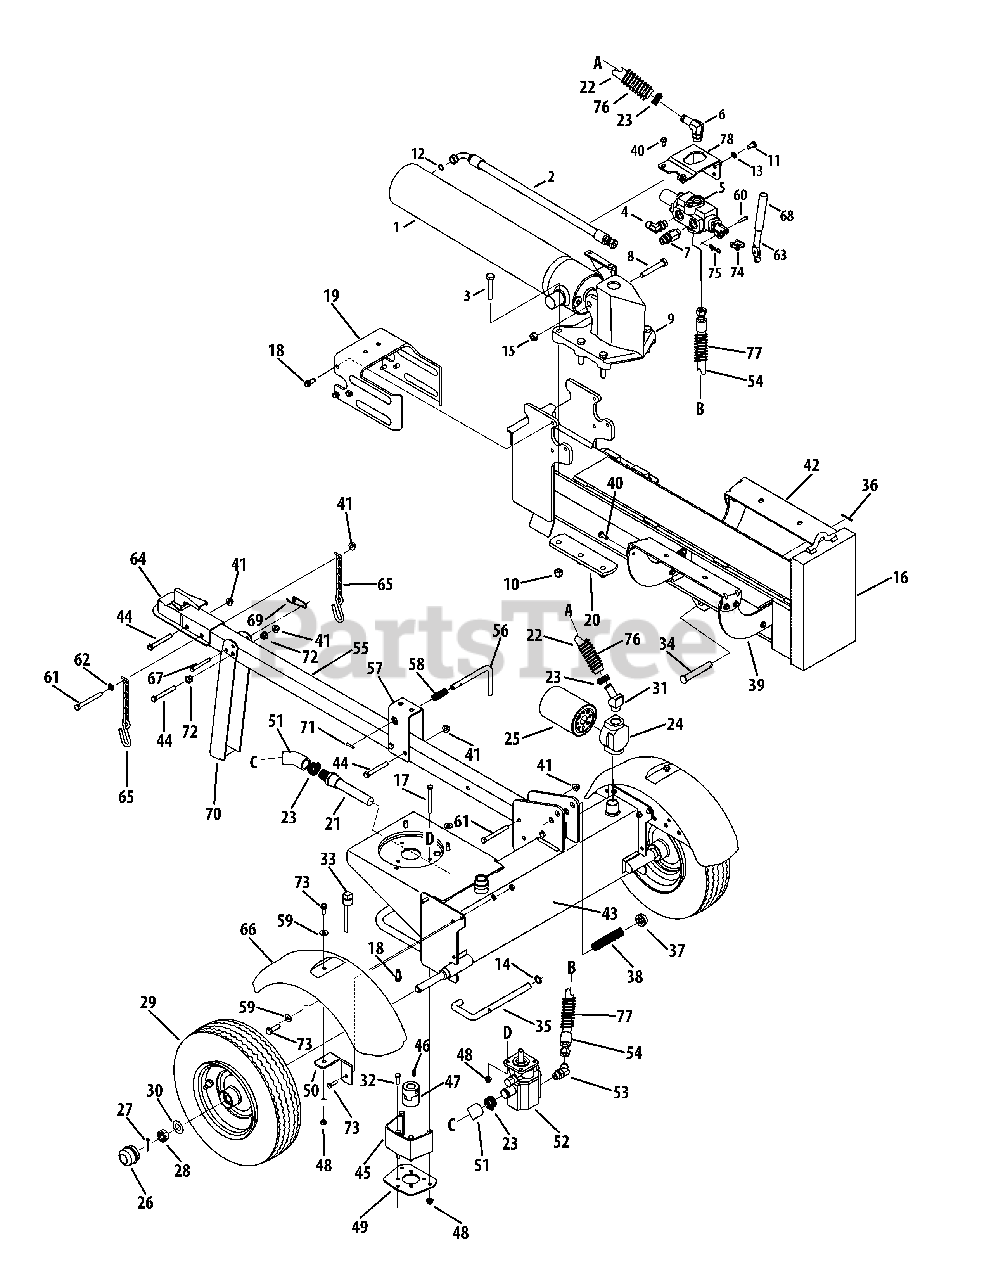 MTD Parts on the General Assembly Diagram for 24BF51MX704